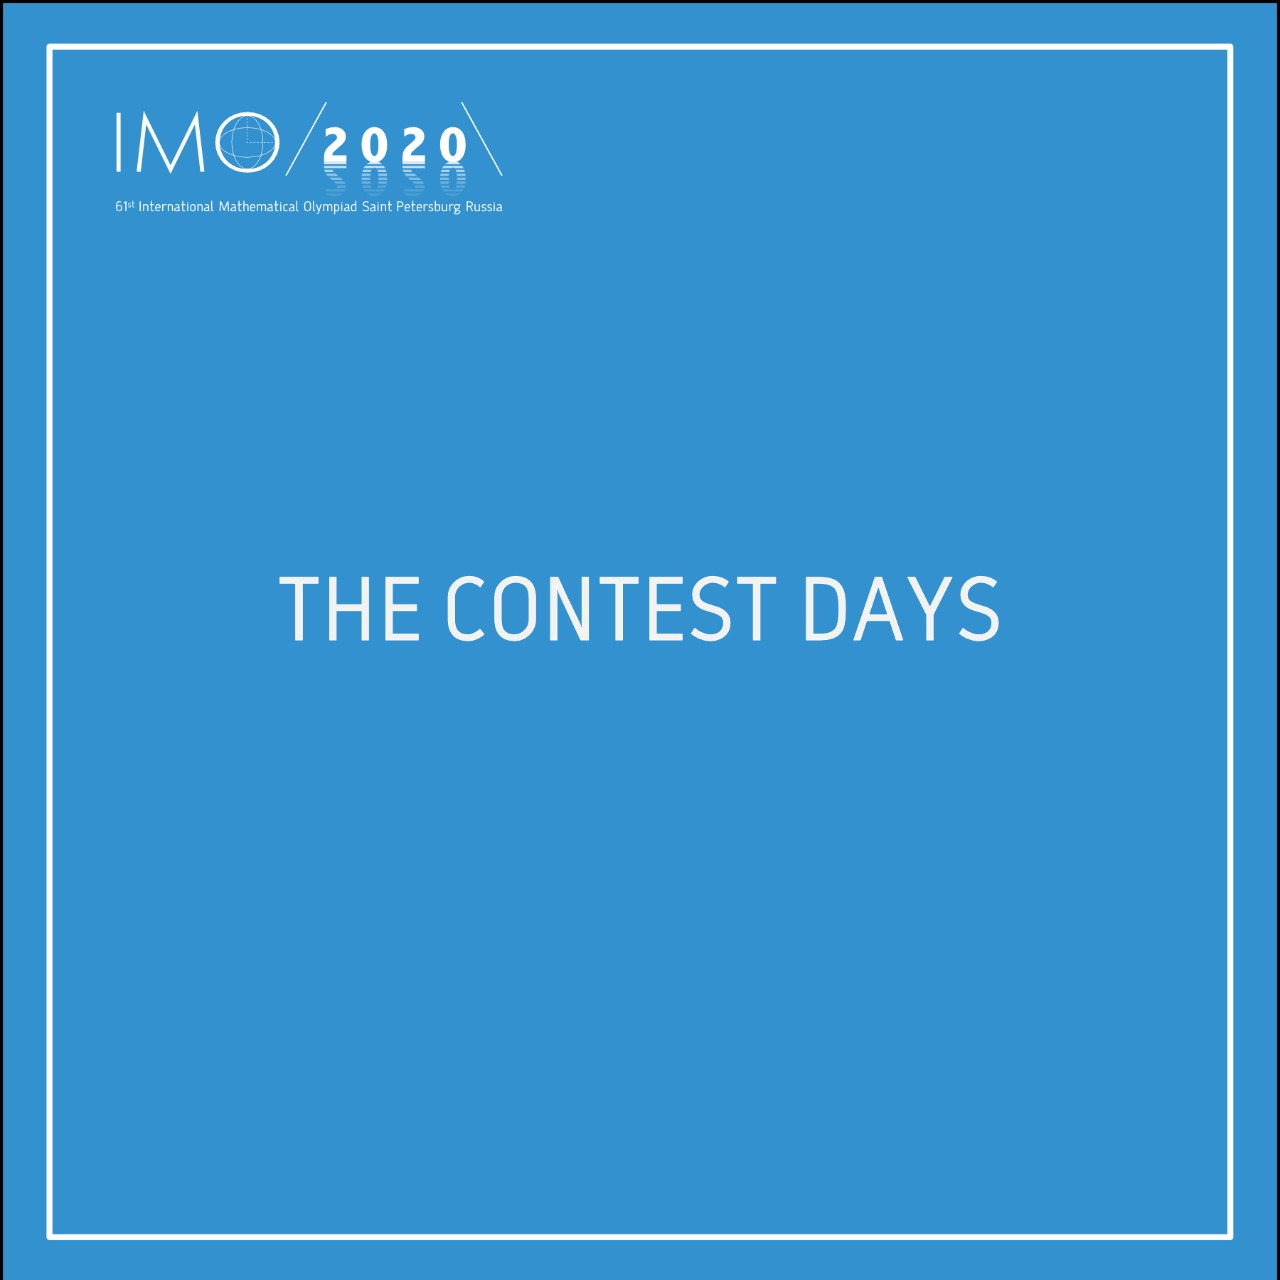 The contest days will be held from the 21st till 22nd September. The organising committee of the 61st IMO wishes you good luck to all the participants!